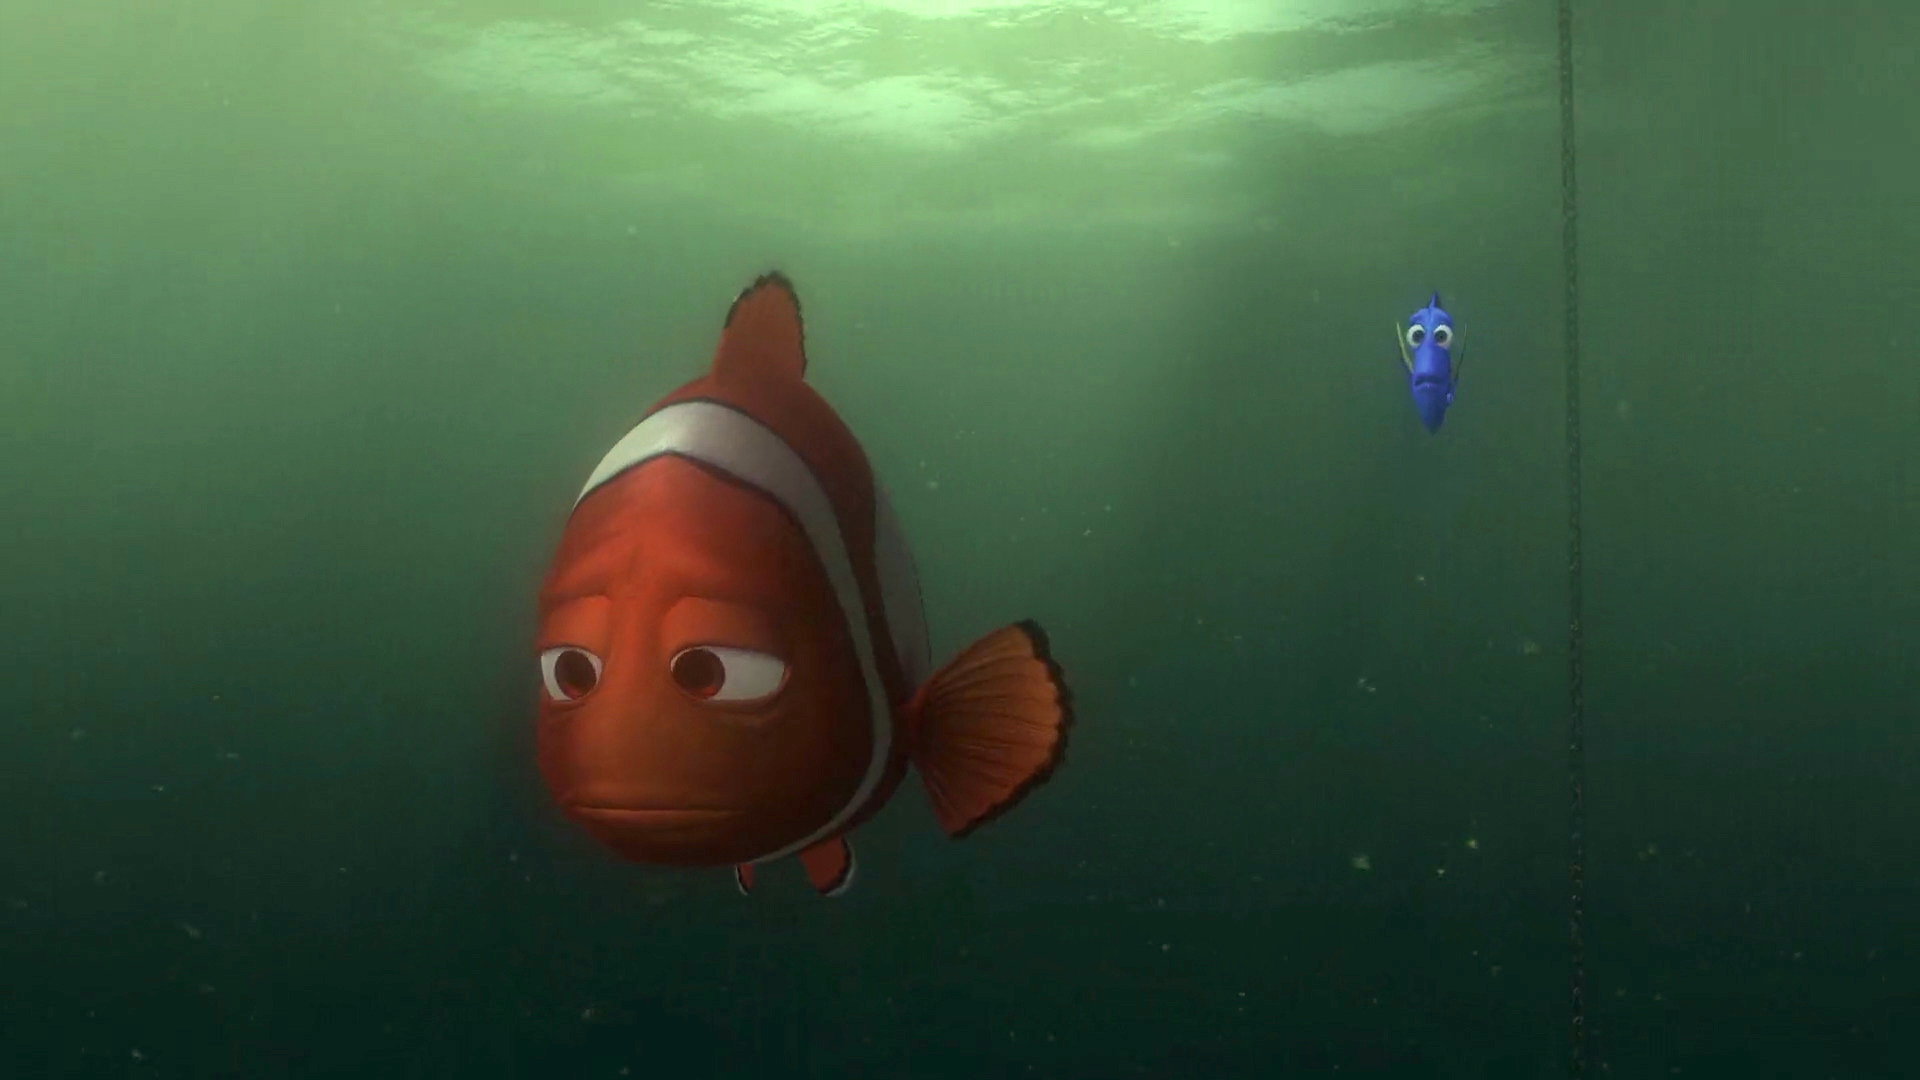 Finding Nemo - give up